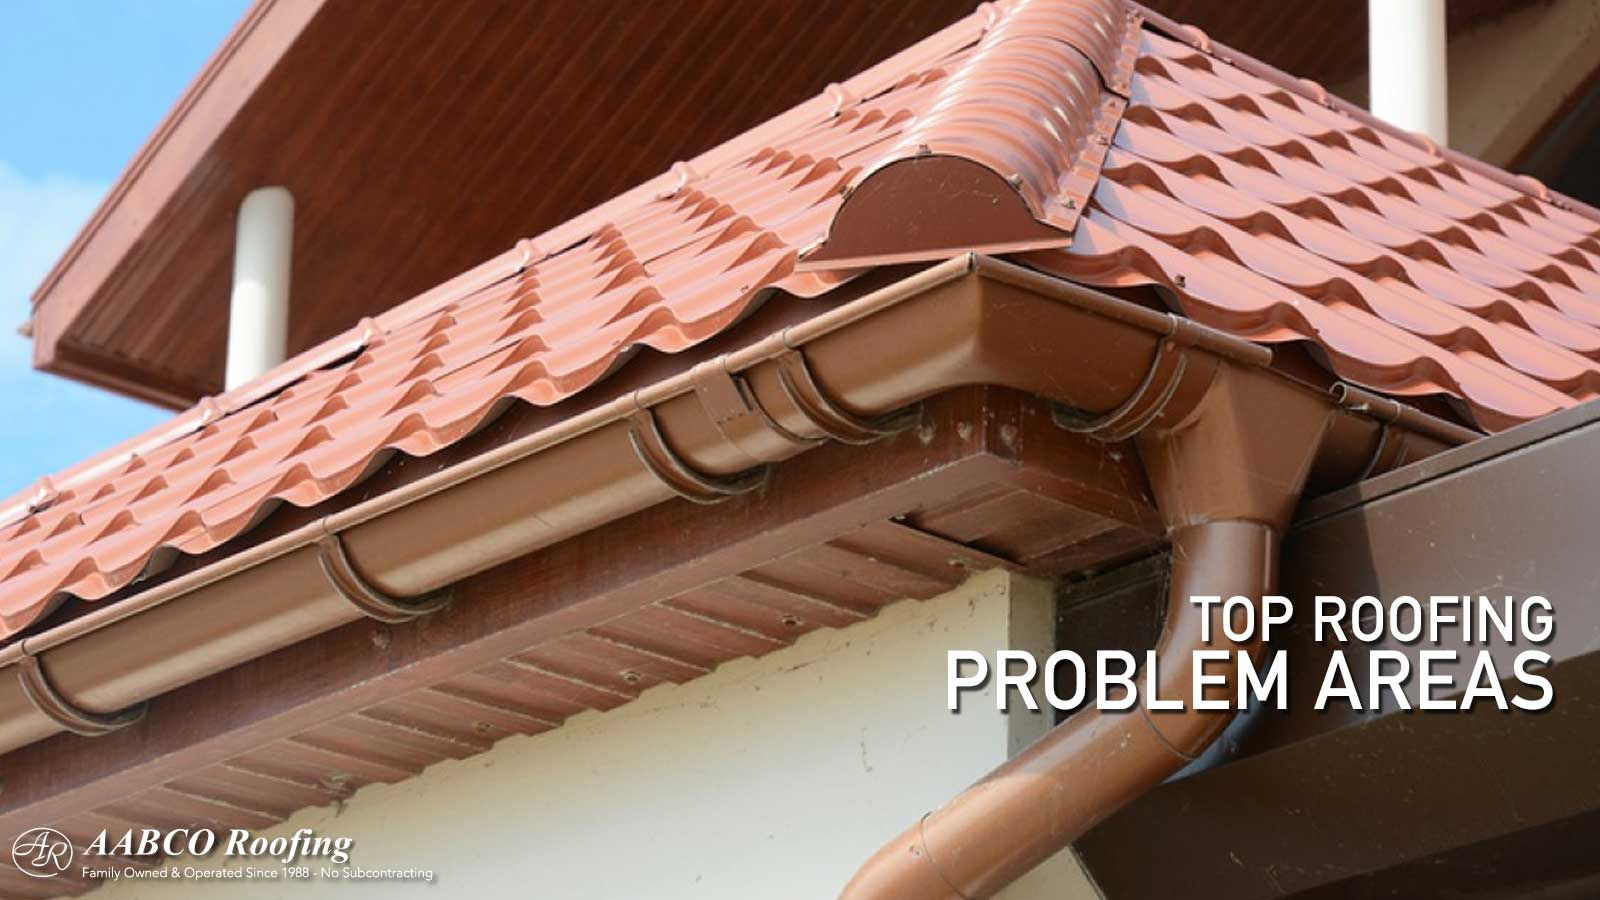 Roofing Problem Areas